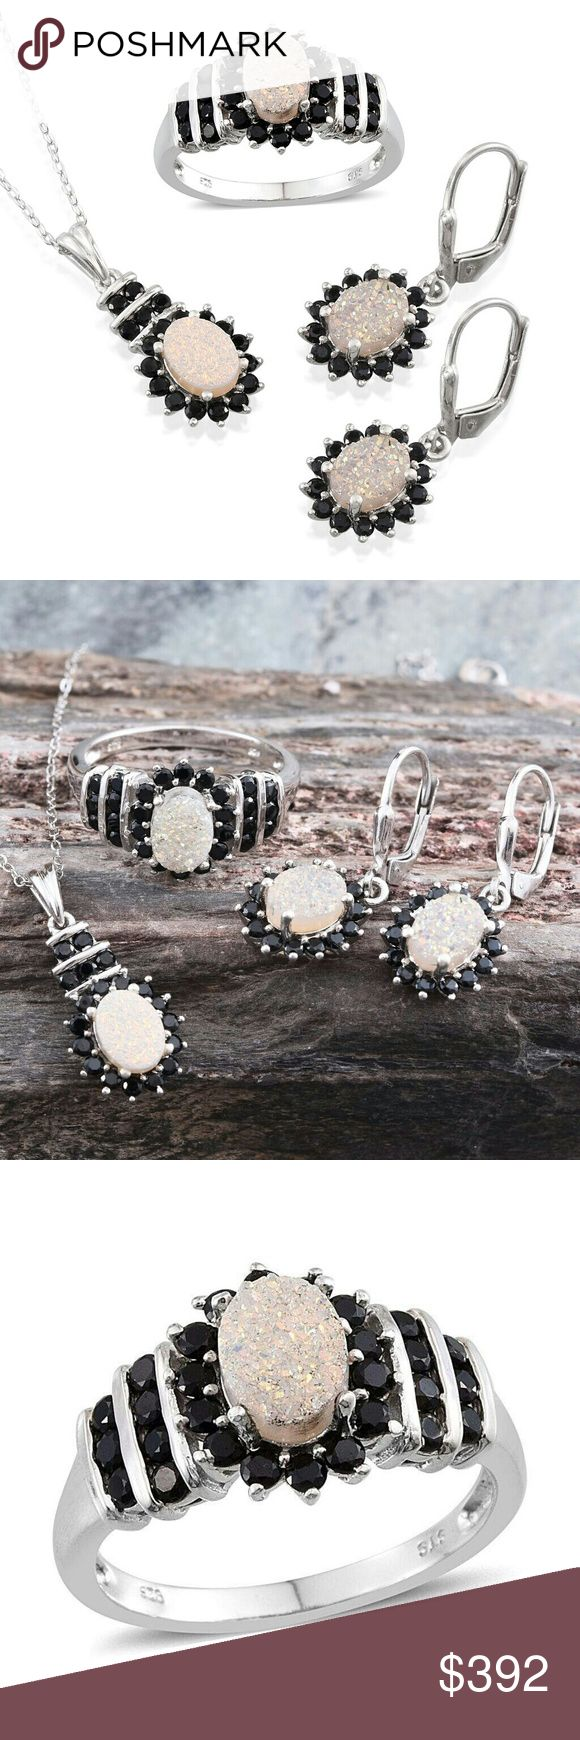 """Available June 6 Pearl Shimmer Drusy Quartz Set Pearl Shimmer Drusy Quartz Thai Black Spinel Platinum over Sterling SIlver Ring Sz 7, Earrings, and Pendant with Stainless Steel Chain 20"""". TGW 7.90 cts. Jewelry"""